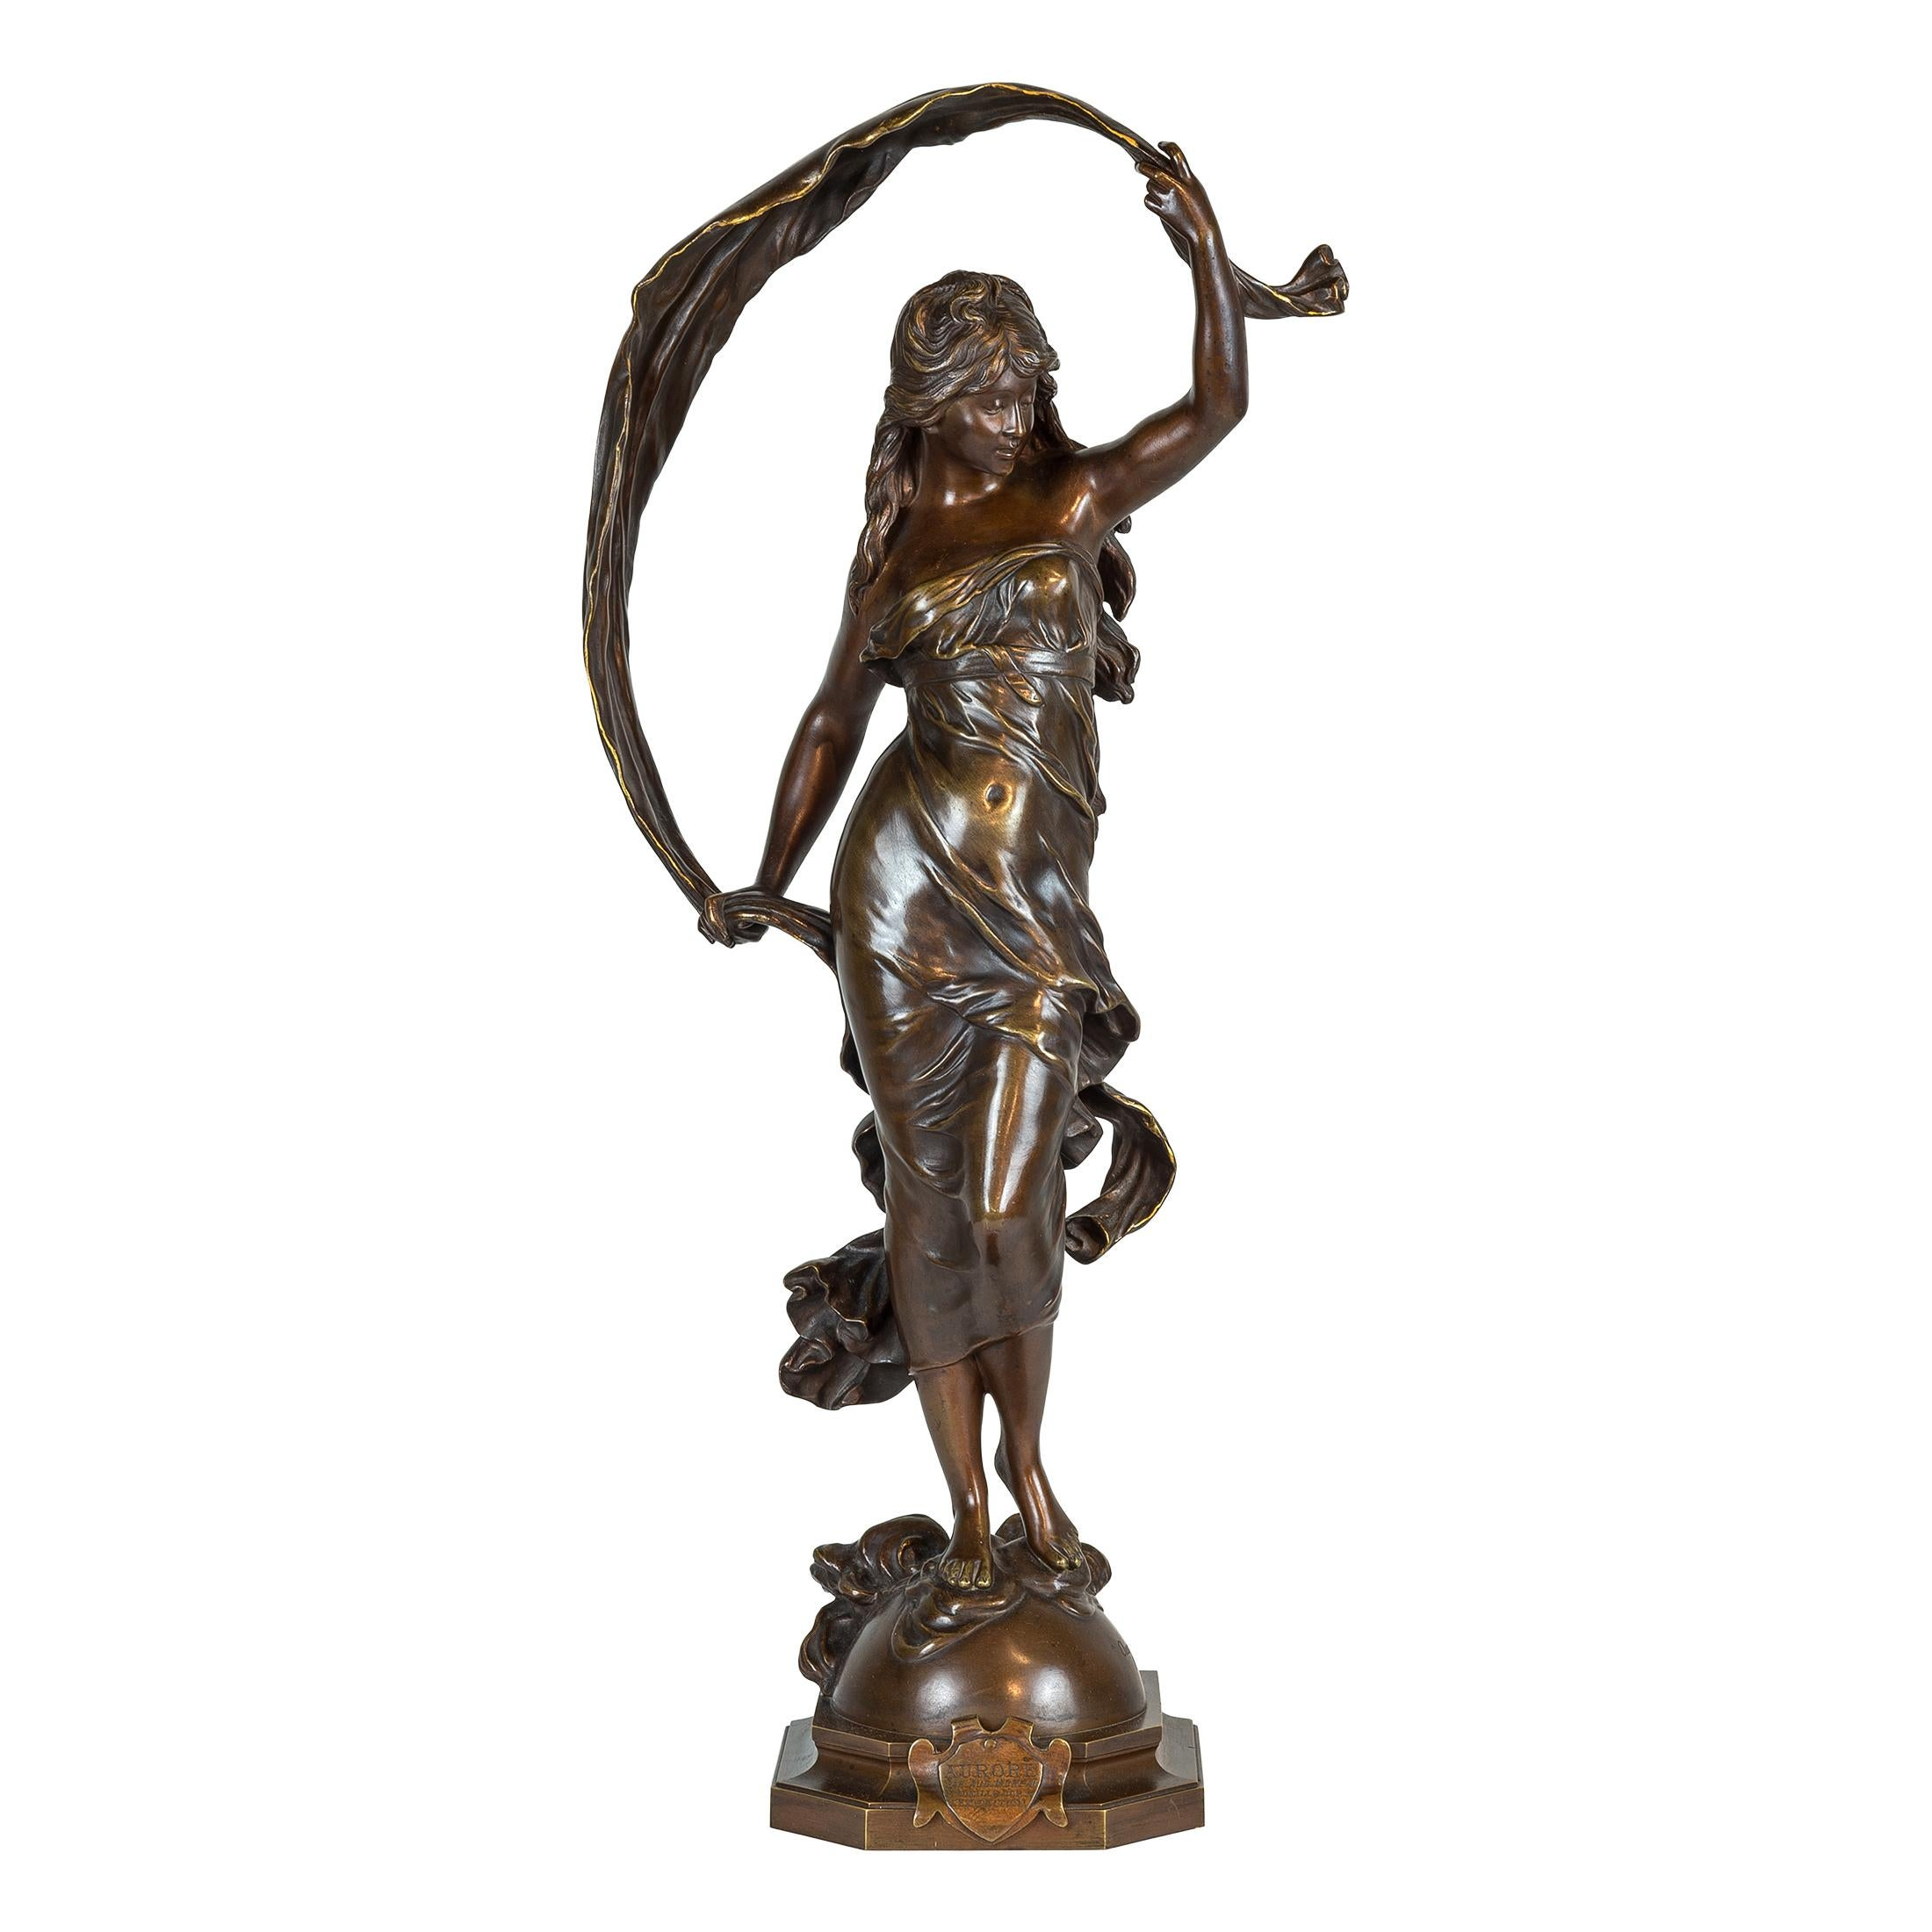 A Fine Patinated Bronze Statue Entitled 'AURORE' by Auguste Moreau